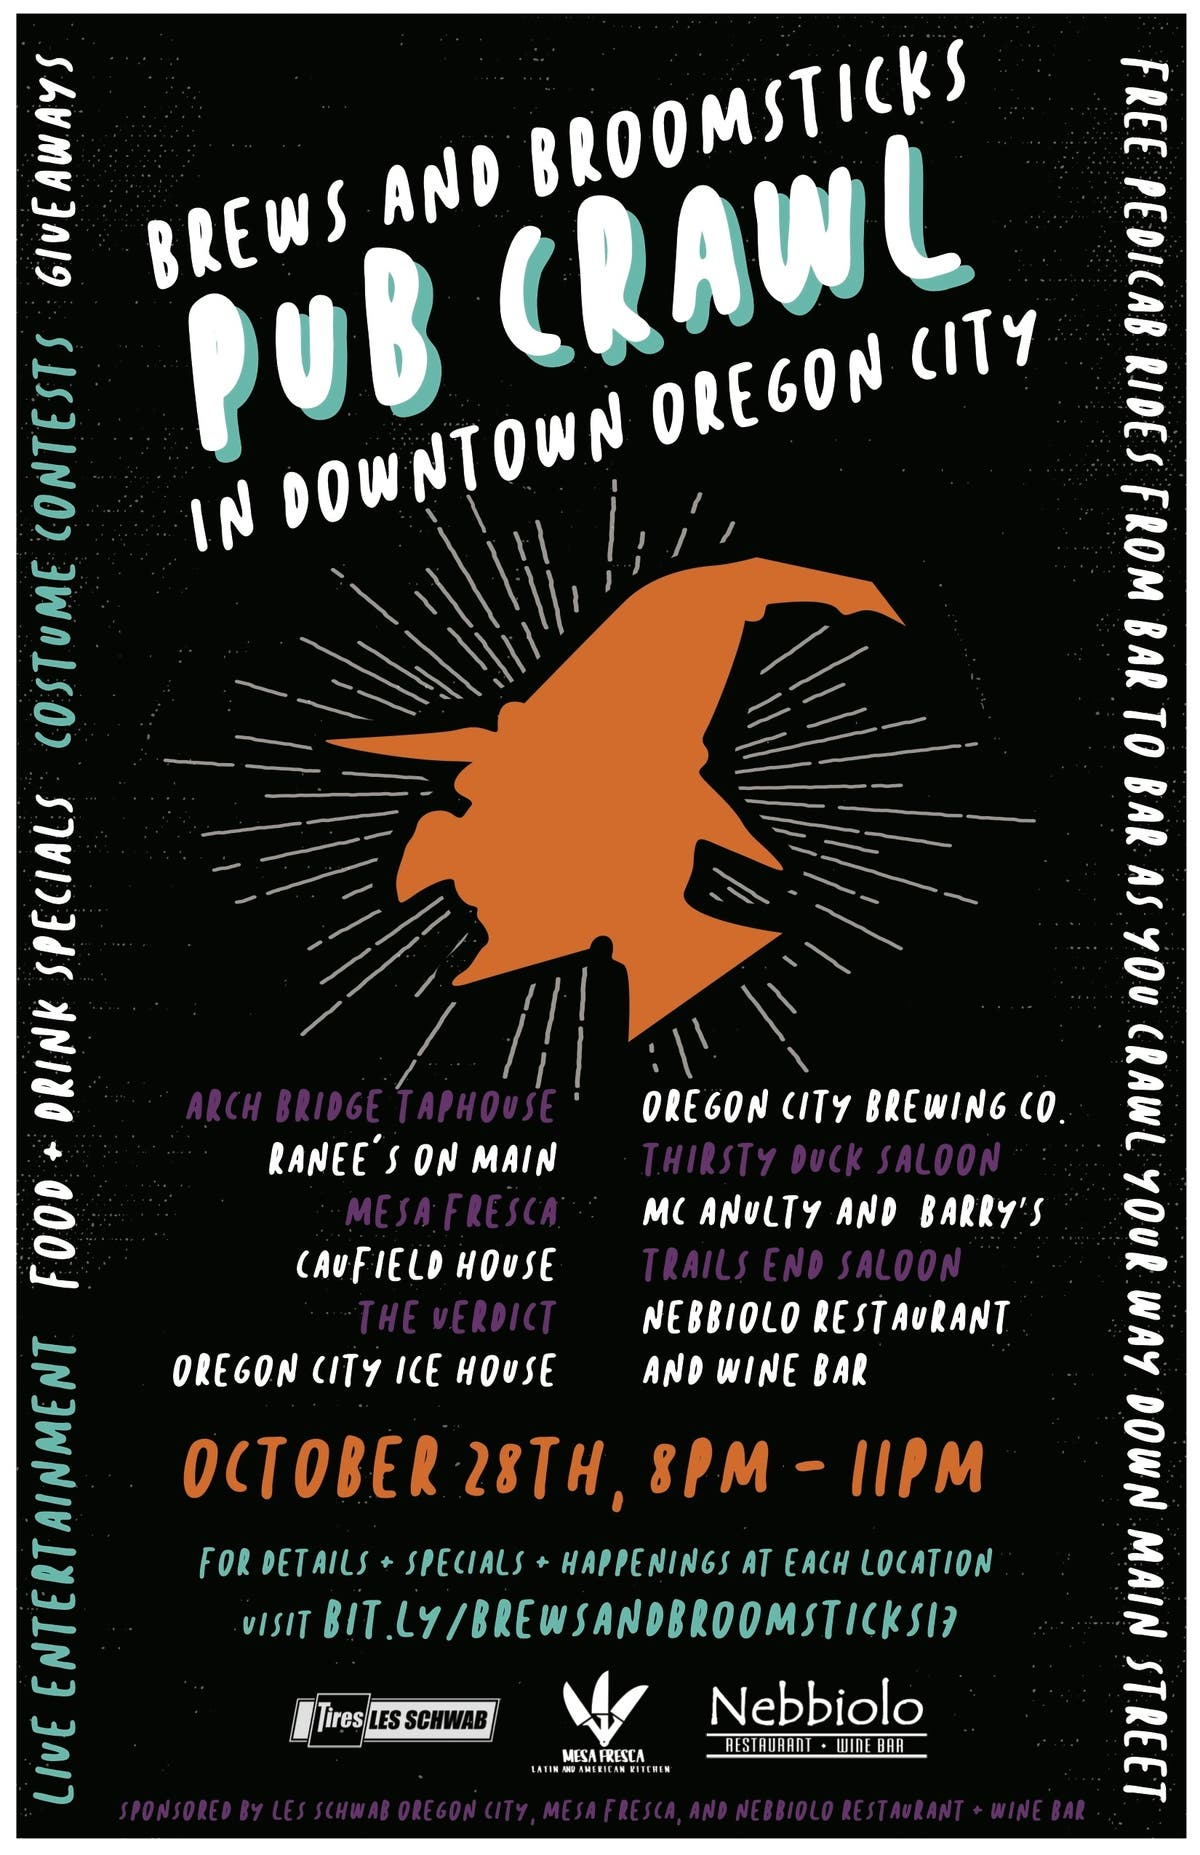 downtown oregon city is the place to be for halloween | oregon city